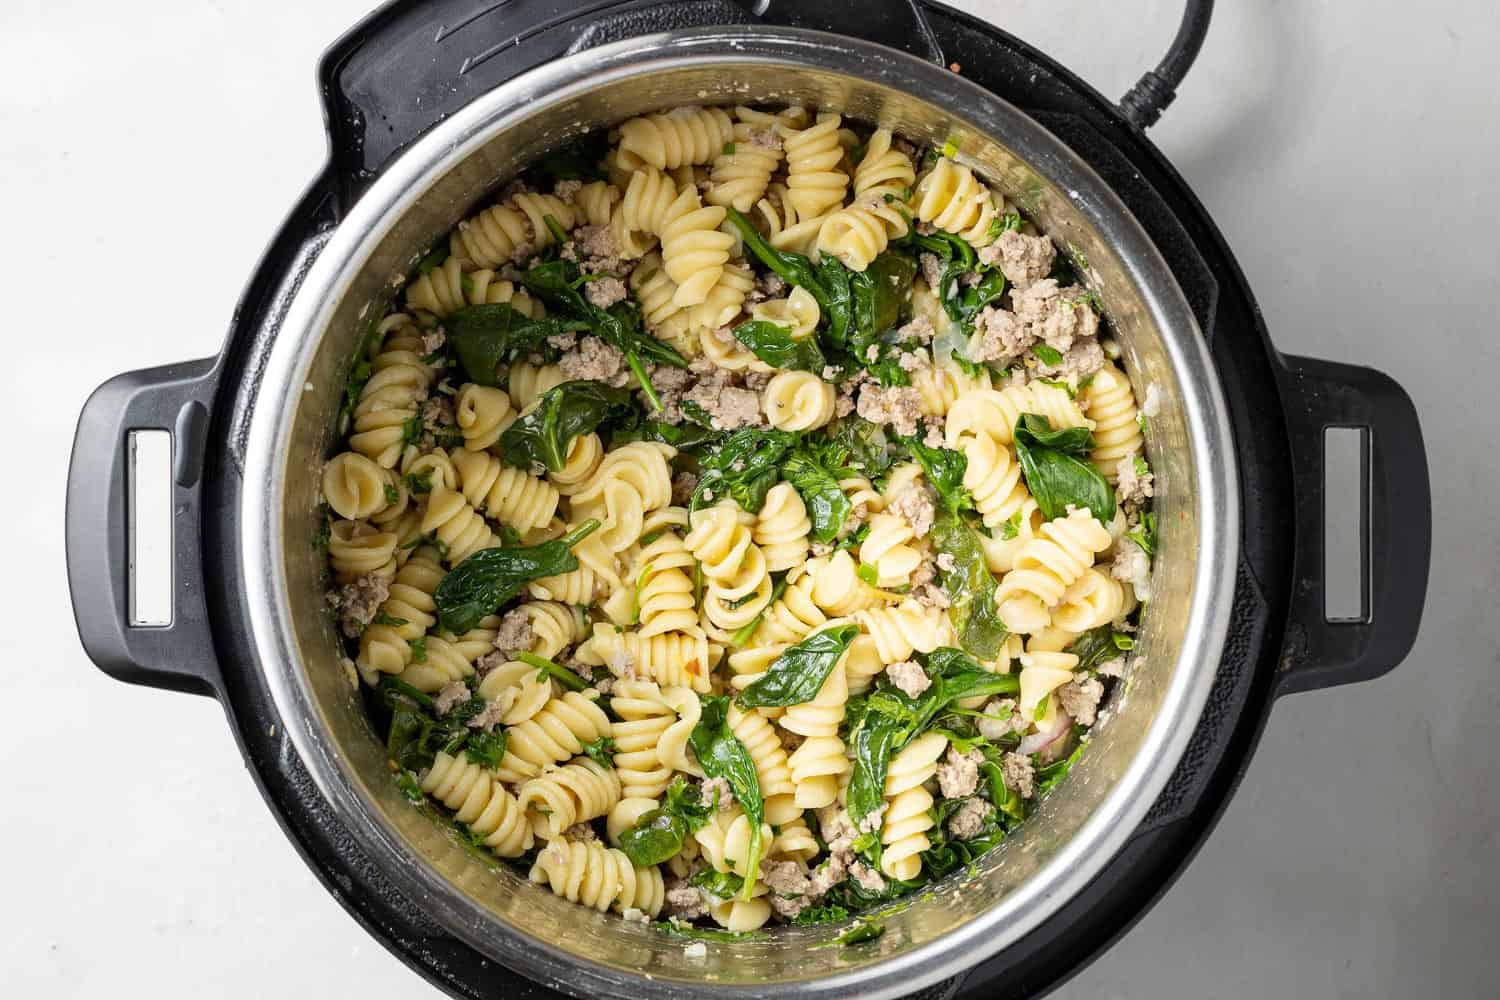 Instant pot pasta with lemon and chicken, still in instant pot.